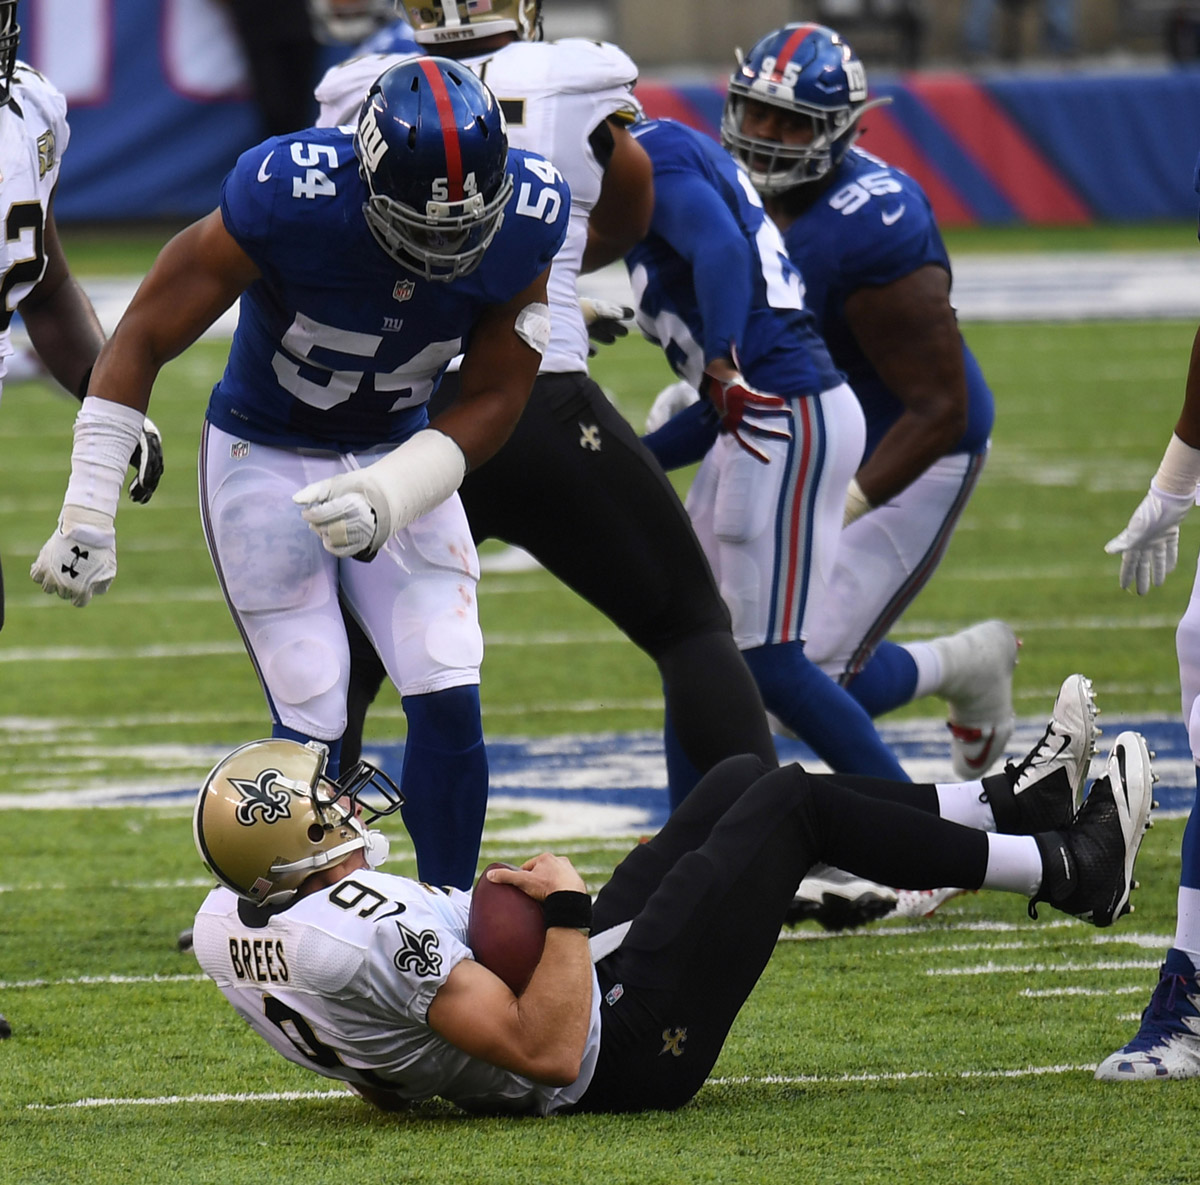 New Orleans Saints Qb Drew Brees Is Sacked By Giants Olivier Vernon